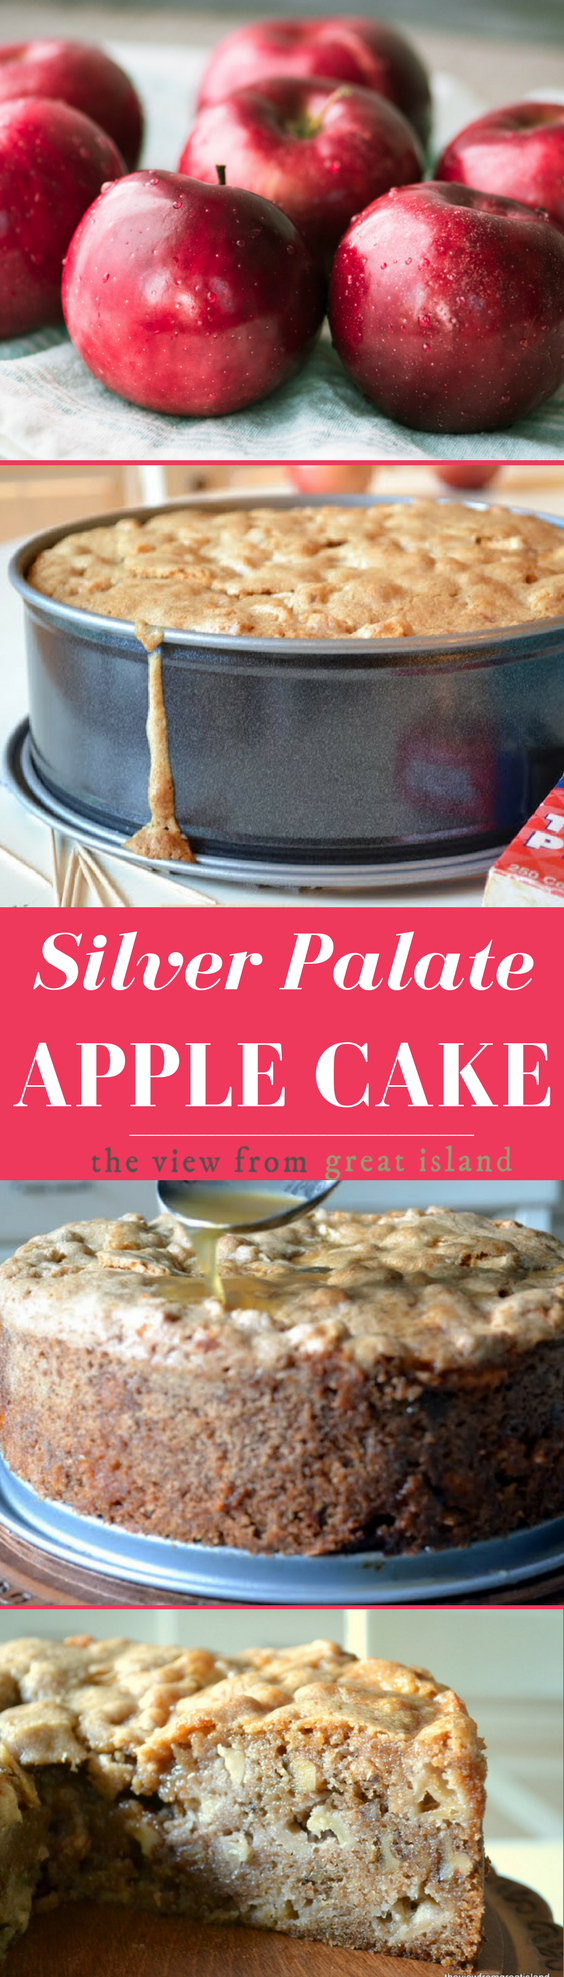 The Silver Palate Apple Cake, made famous in the 80s and has been a beloved fall dessert recipe ever since! #cake #apples #falldessert #dessert #Thesilverpalaterecipe